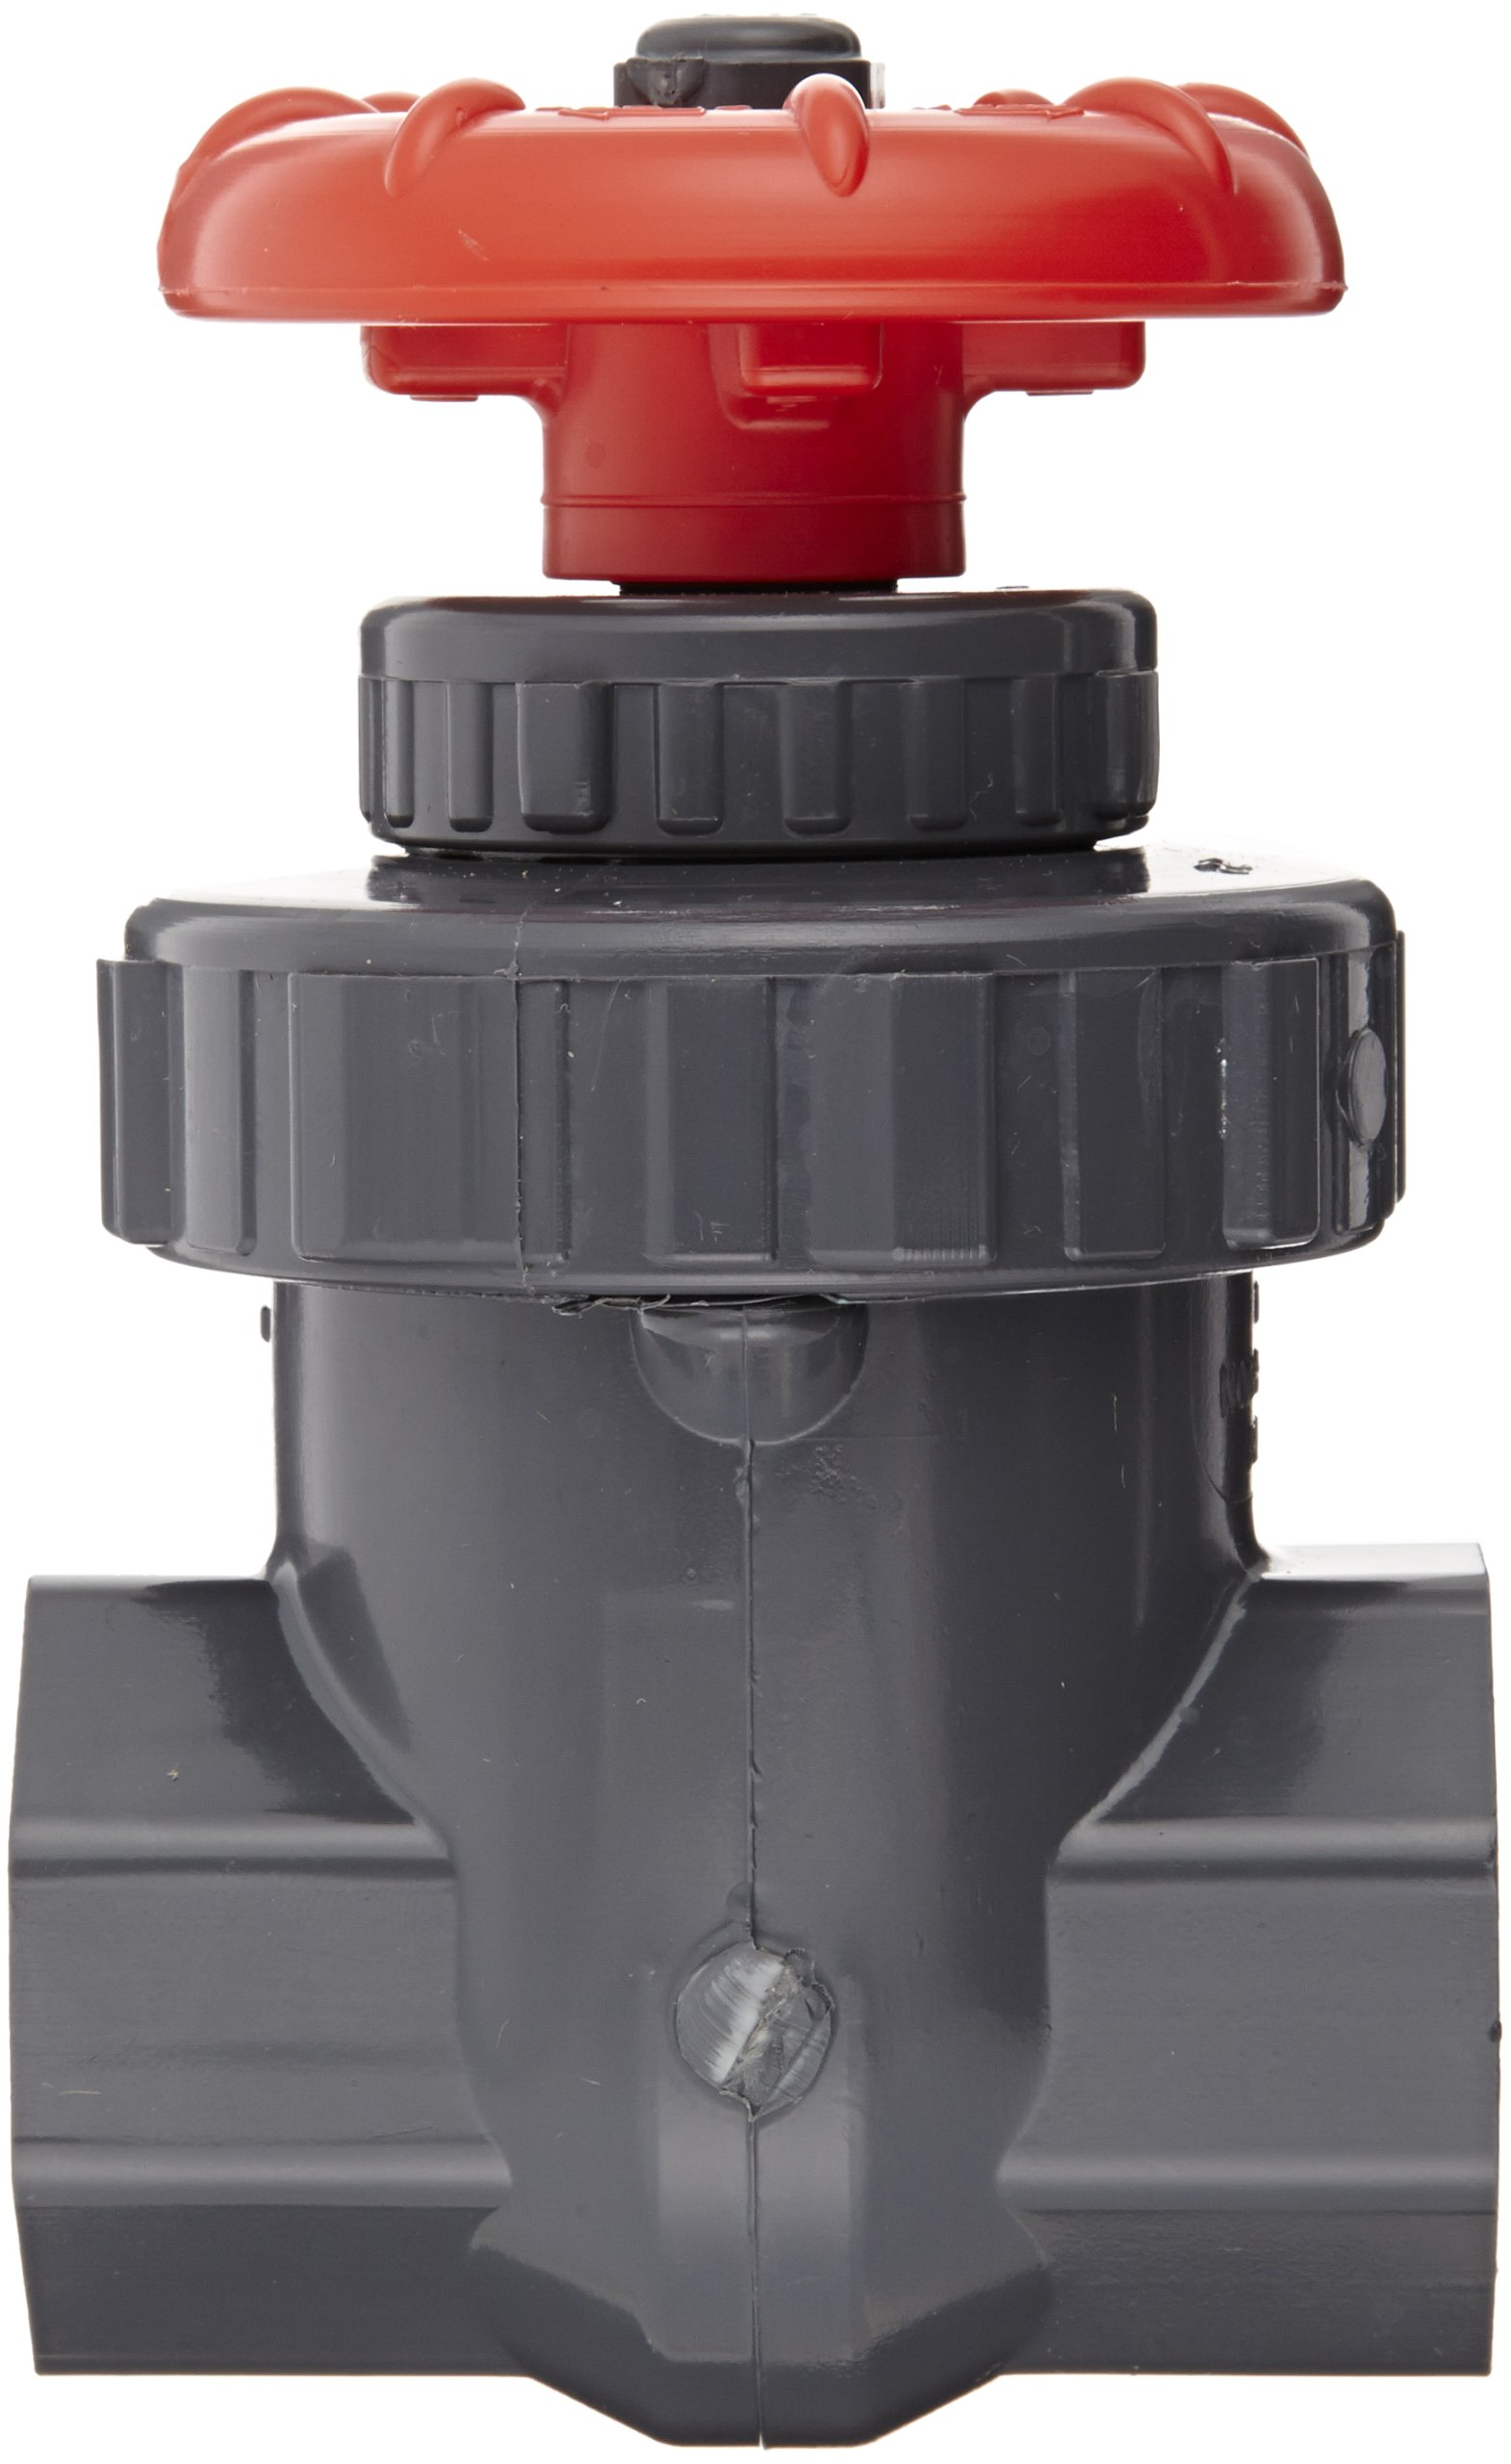 Spears PVC Gate Valve, Non-Rising Stem, Buna-N O-Ring, 1'' NPT Female by Spears Manufacturing (Image #2)